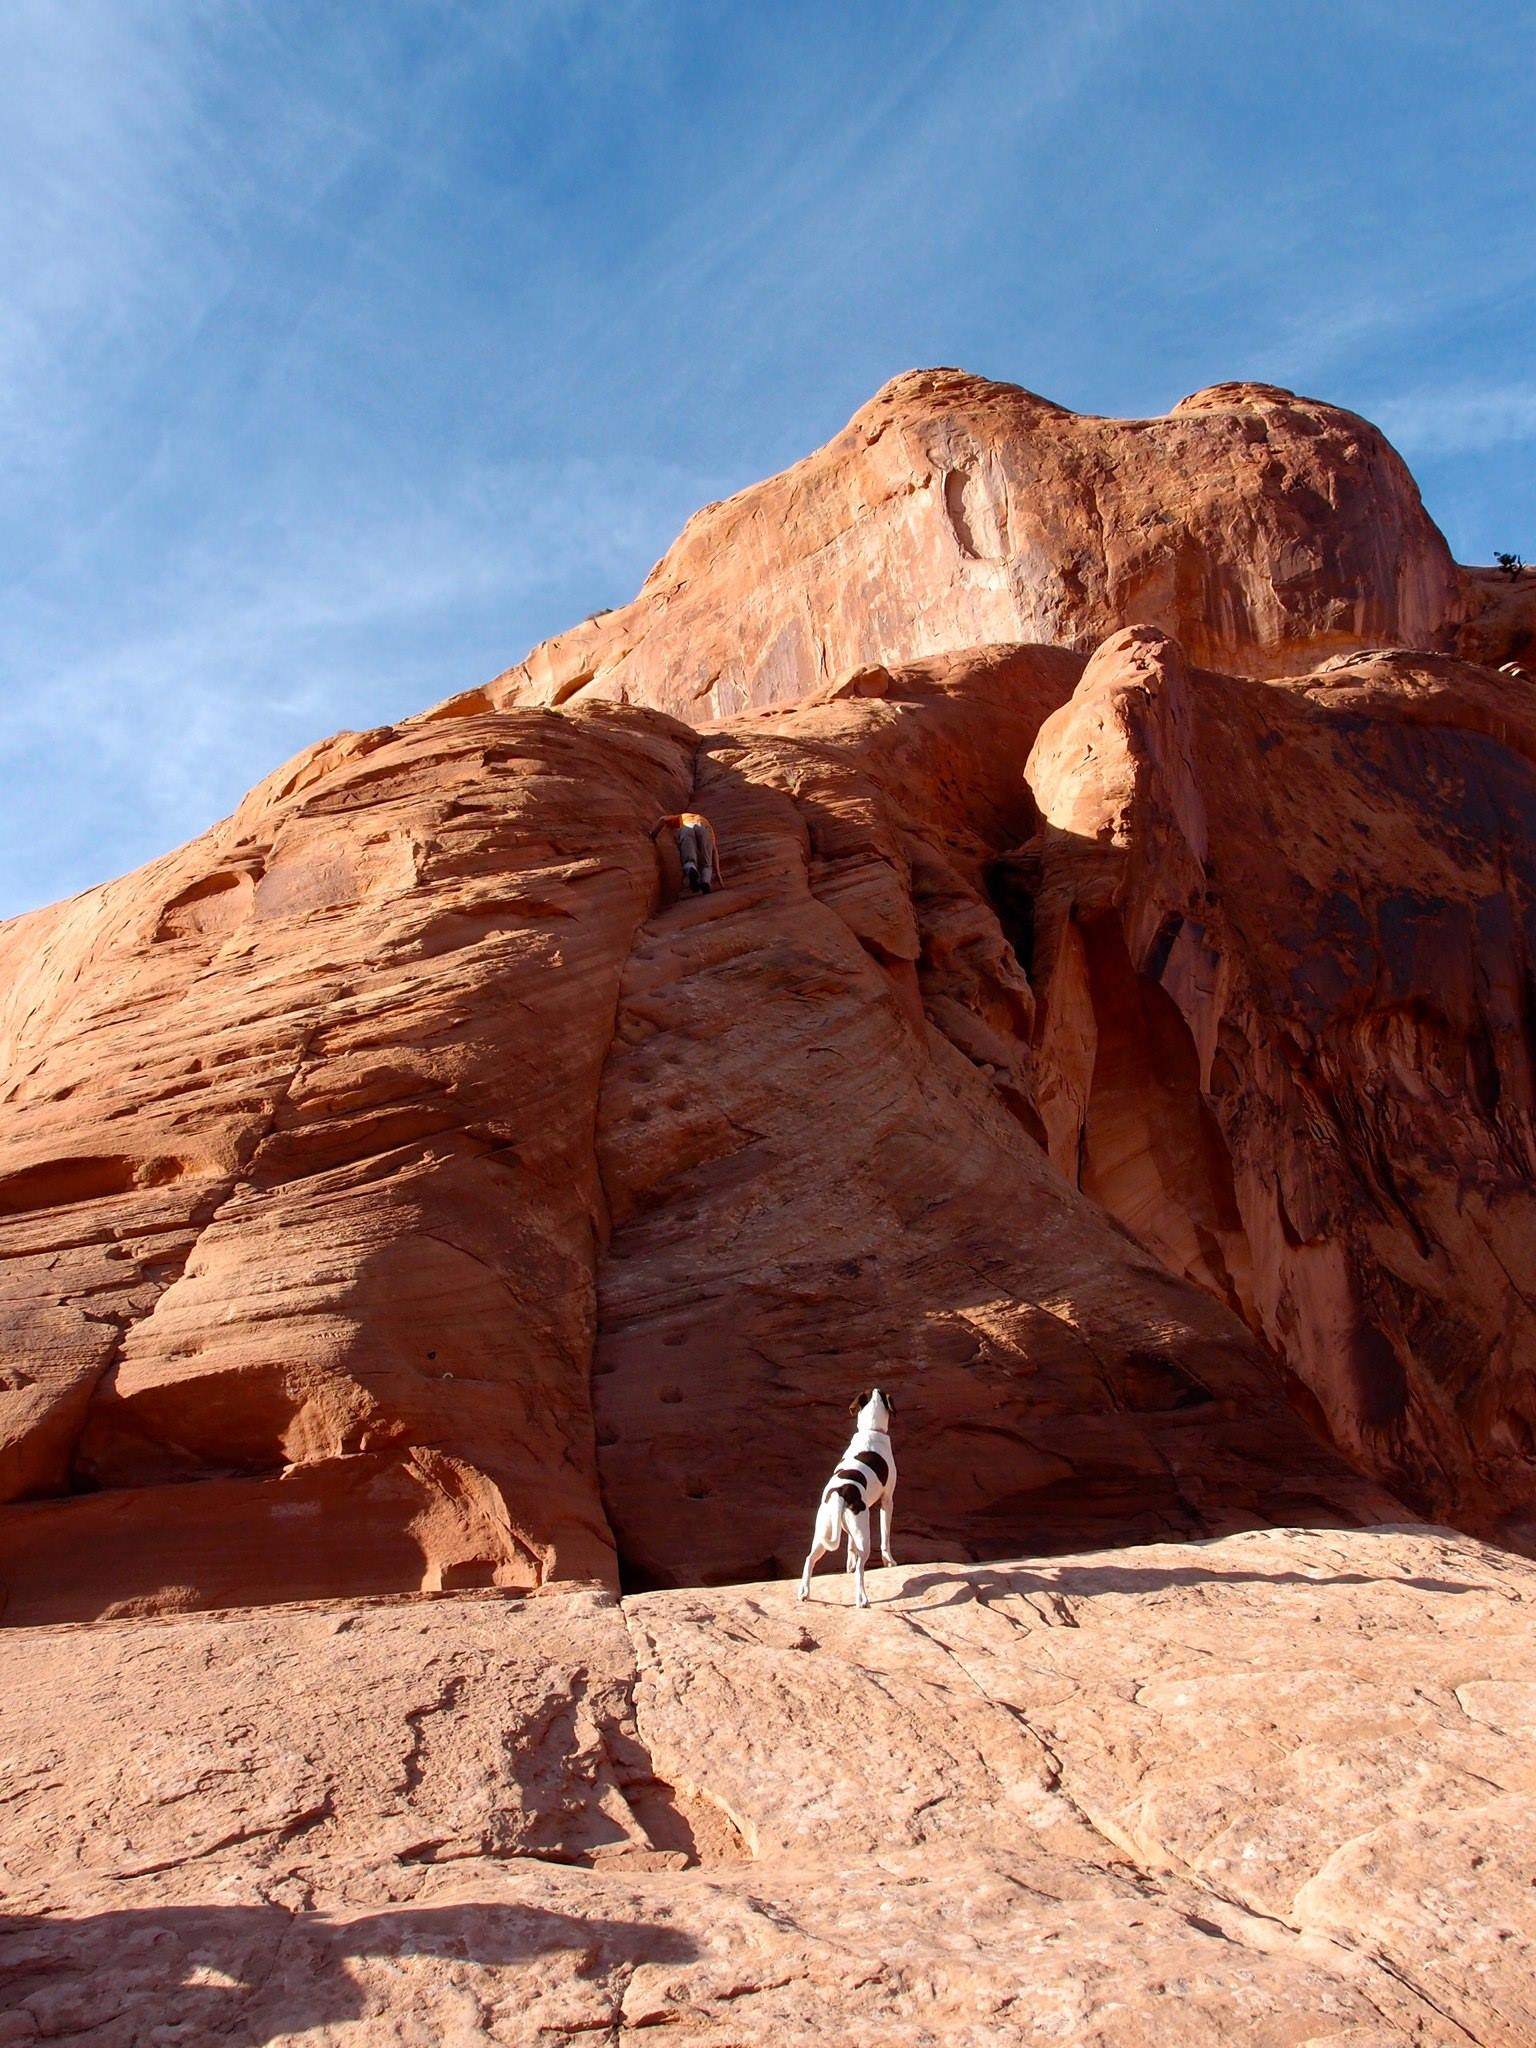 Scrambling up the sandstone ramp   to reach the top of Corona Arch as Soleille the dog looks on. Photo by Mandi Prout